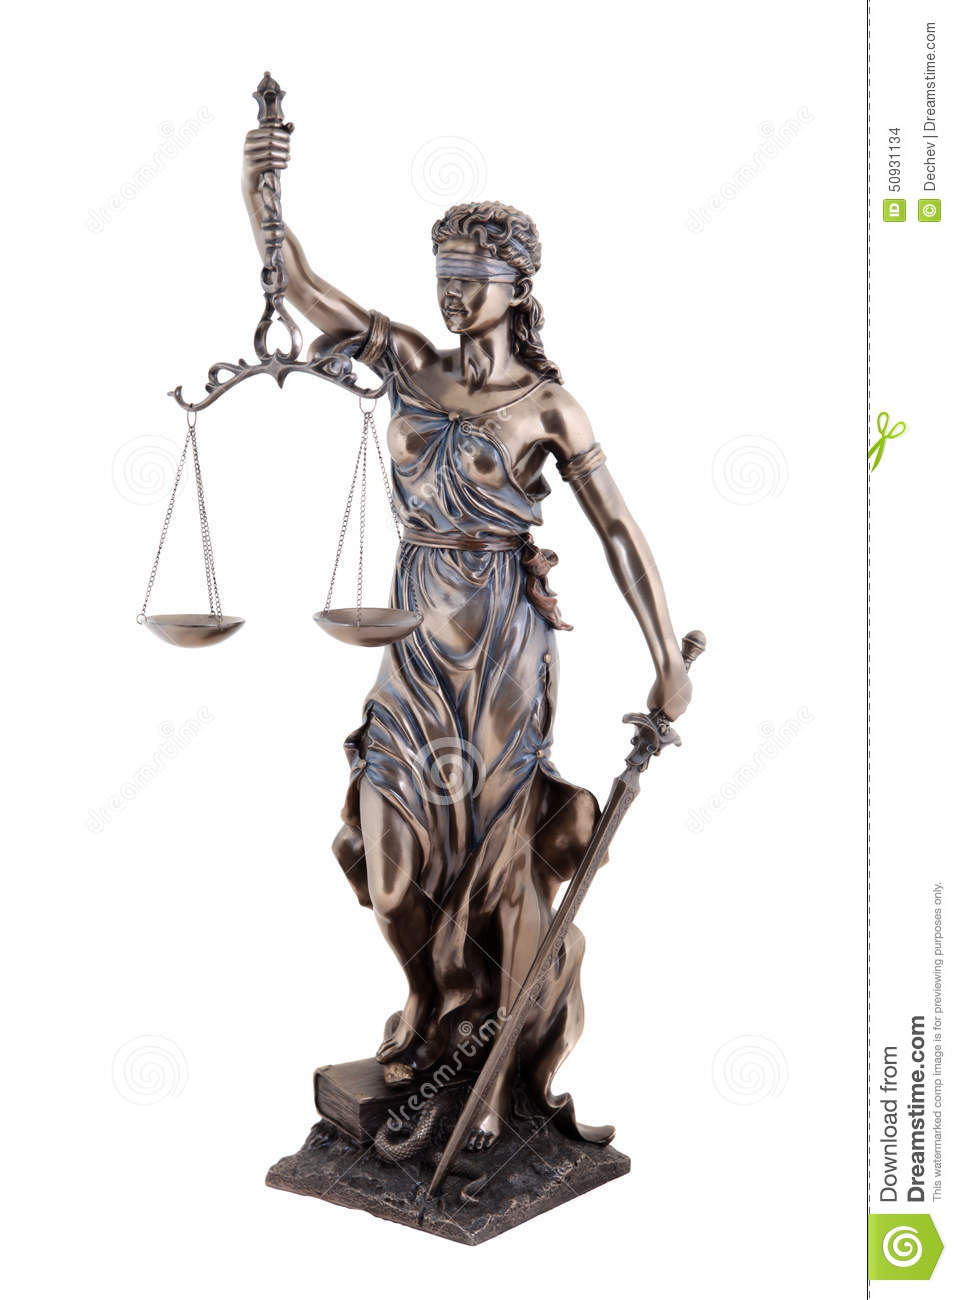 Statue Of Justice Themis Mythological Greek Goddess